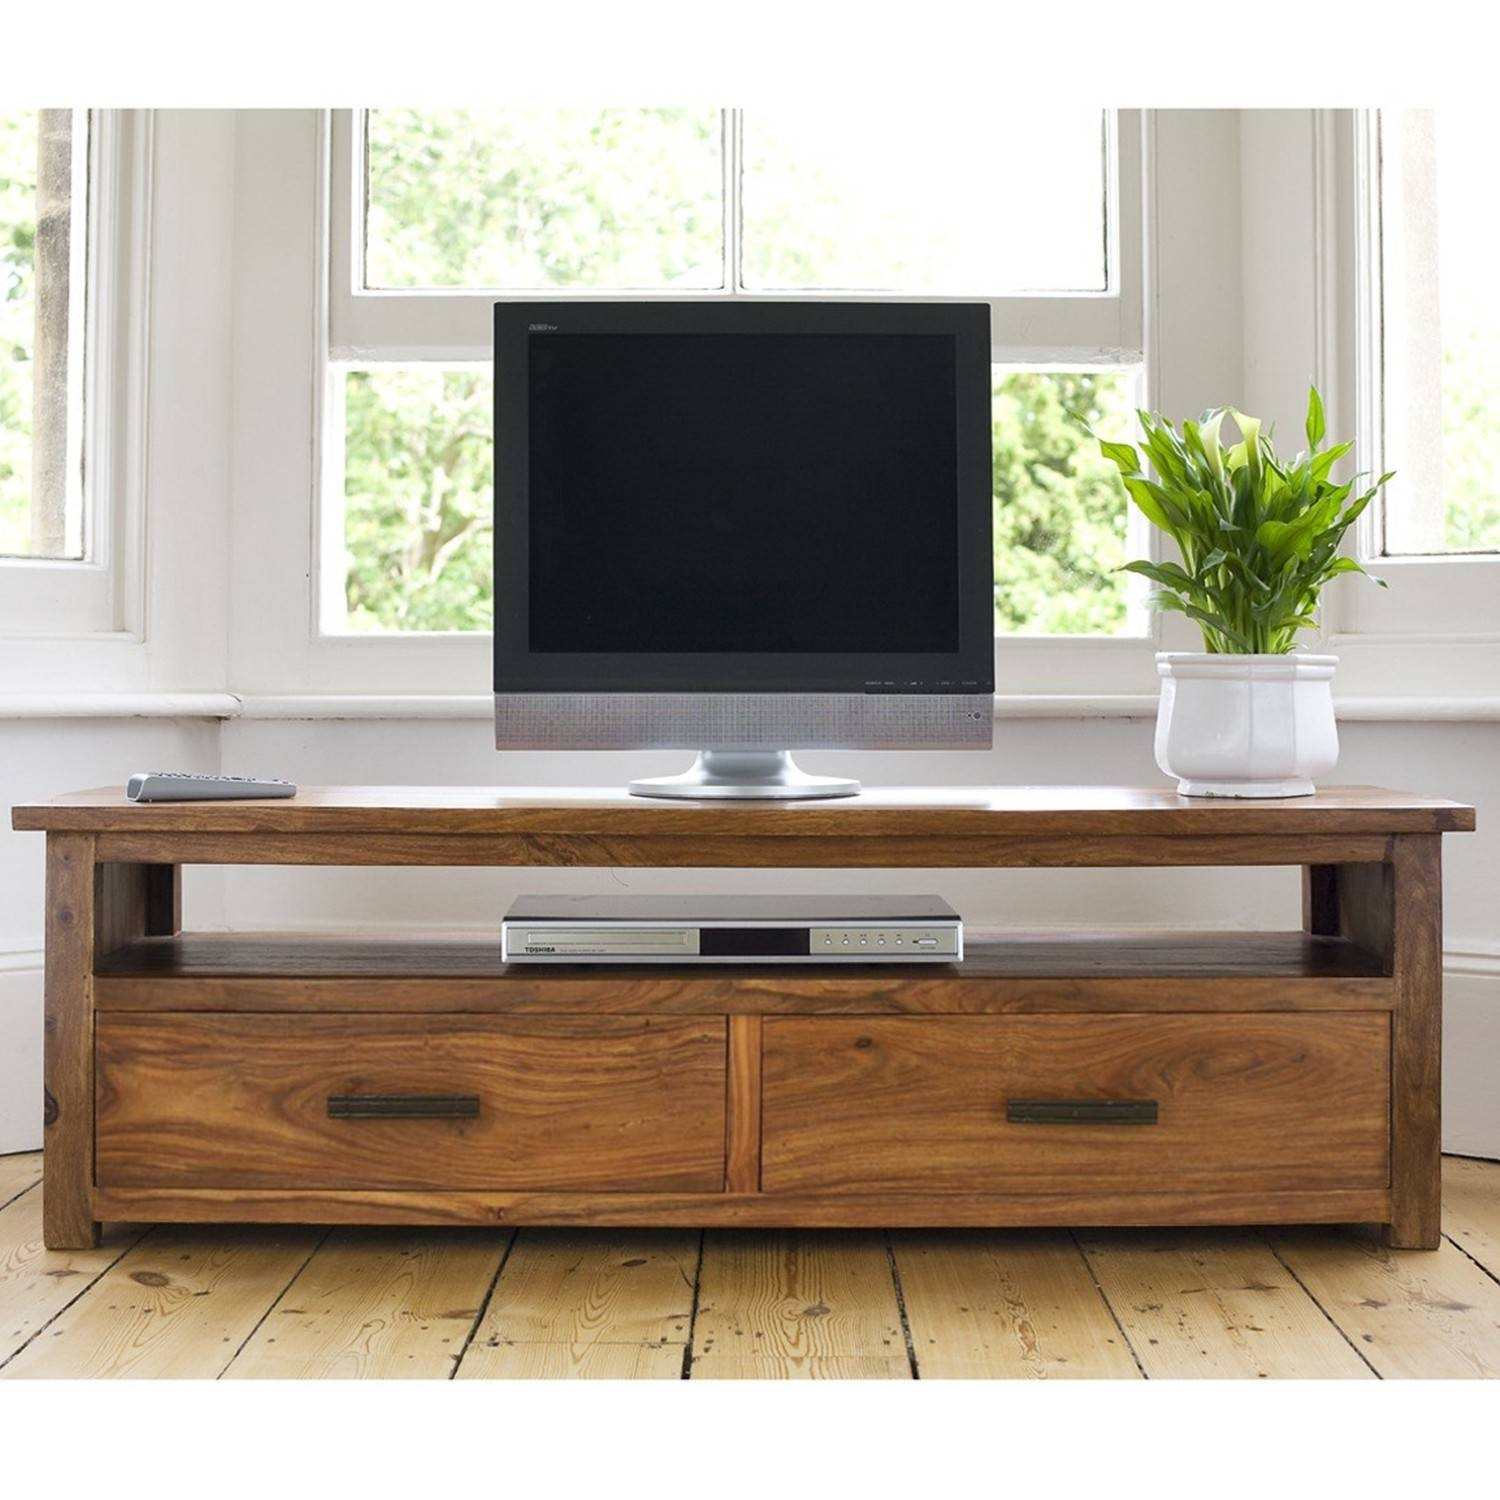 Sheesham Wood Tv Stand | The Yellow Door Store in Sheesham Tv Stands (Image 9 of 15)